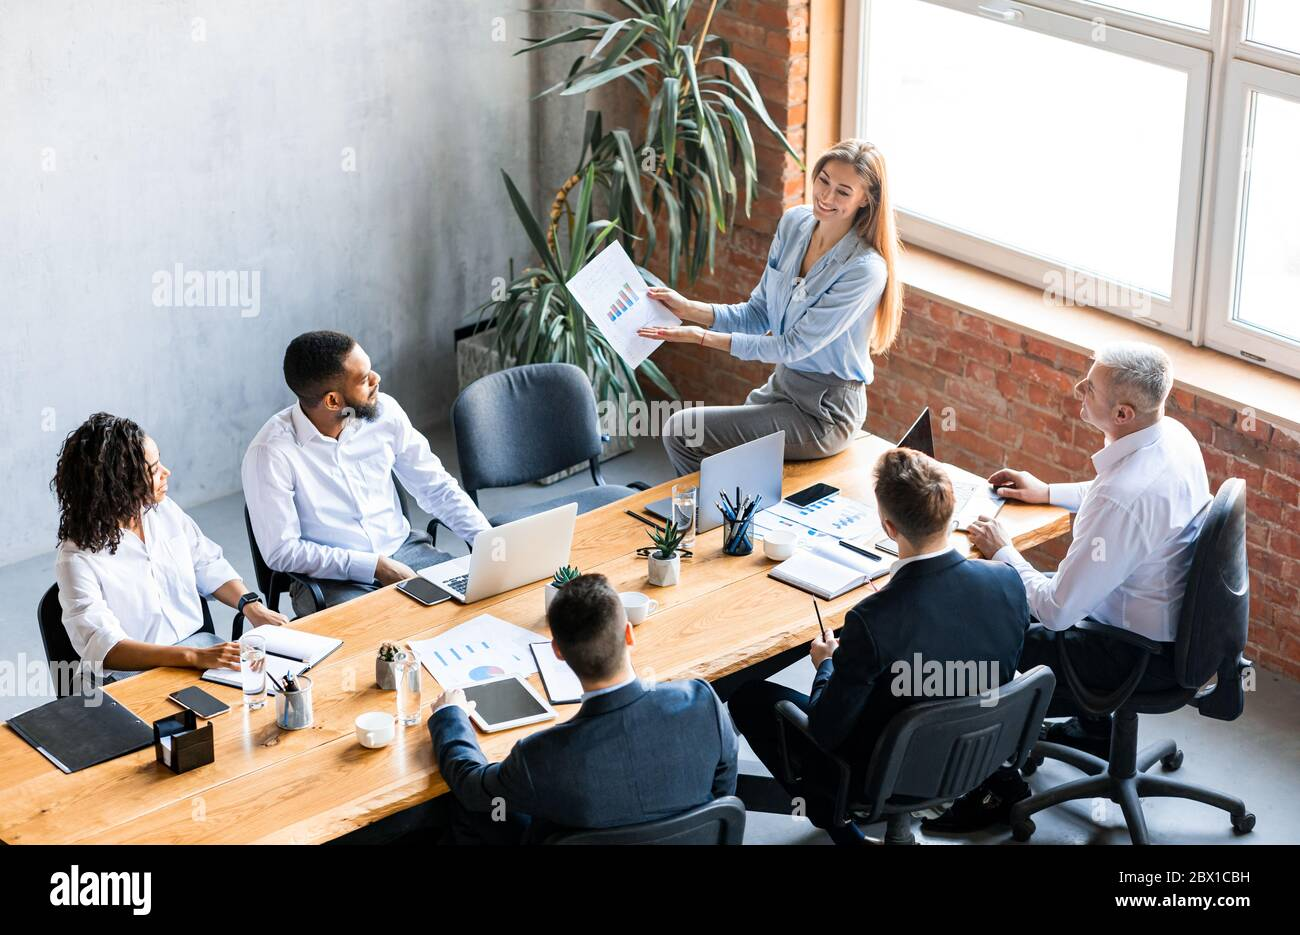 Businesswoman Showing Charts To Colleagues Analyzing Business Effectiveness In Office Stock Photo